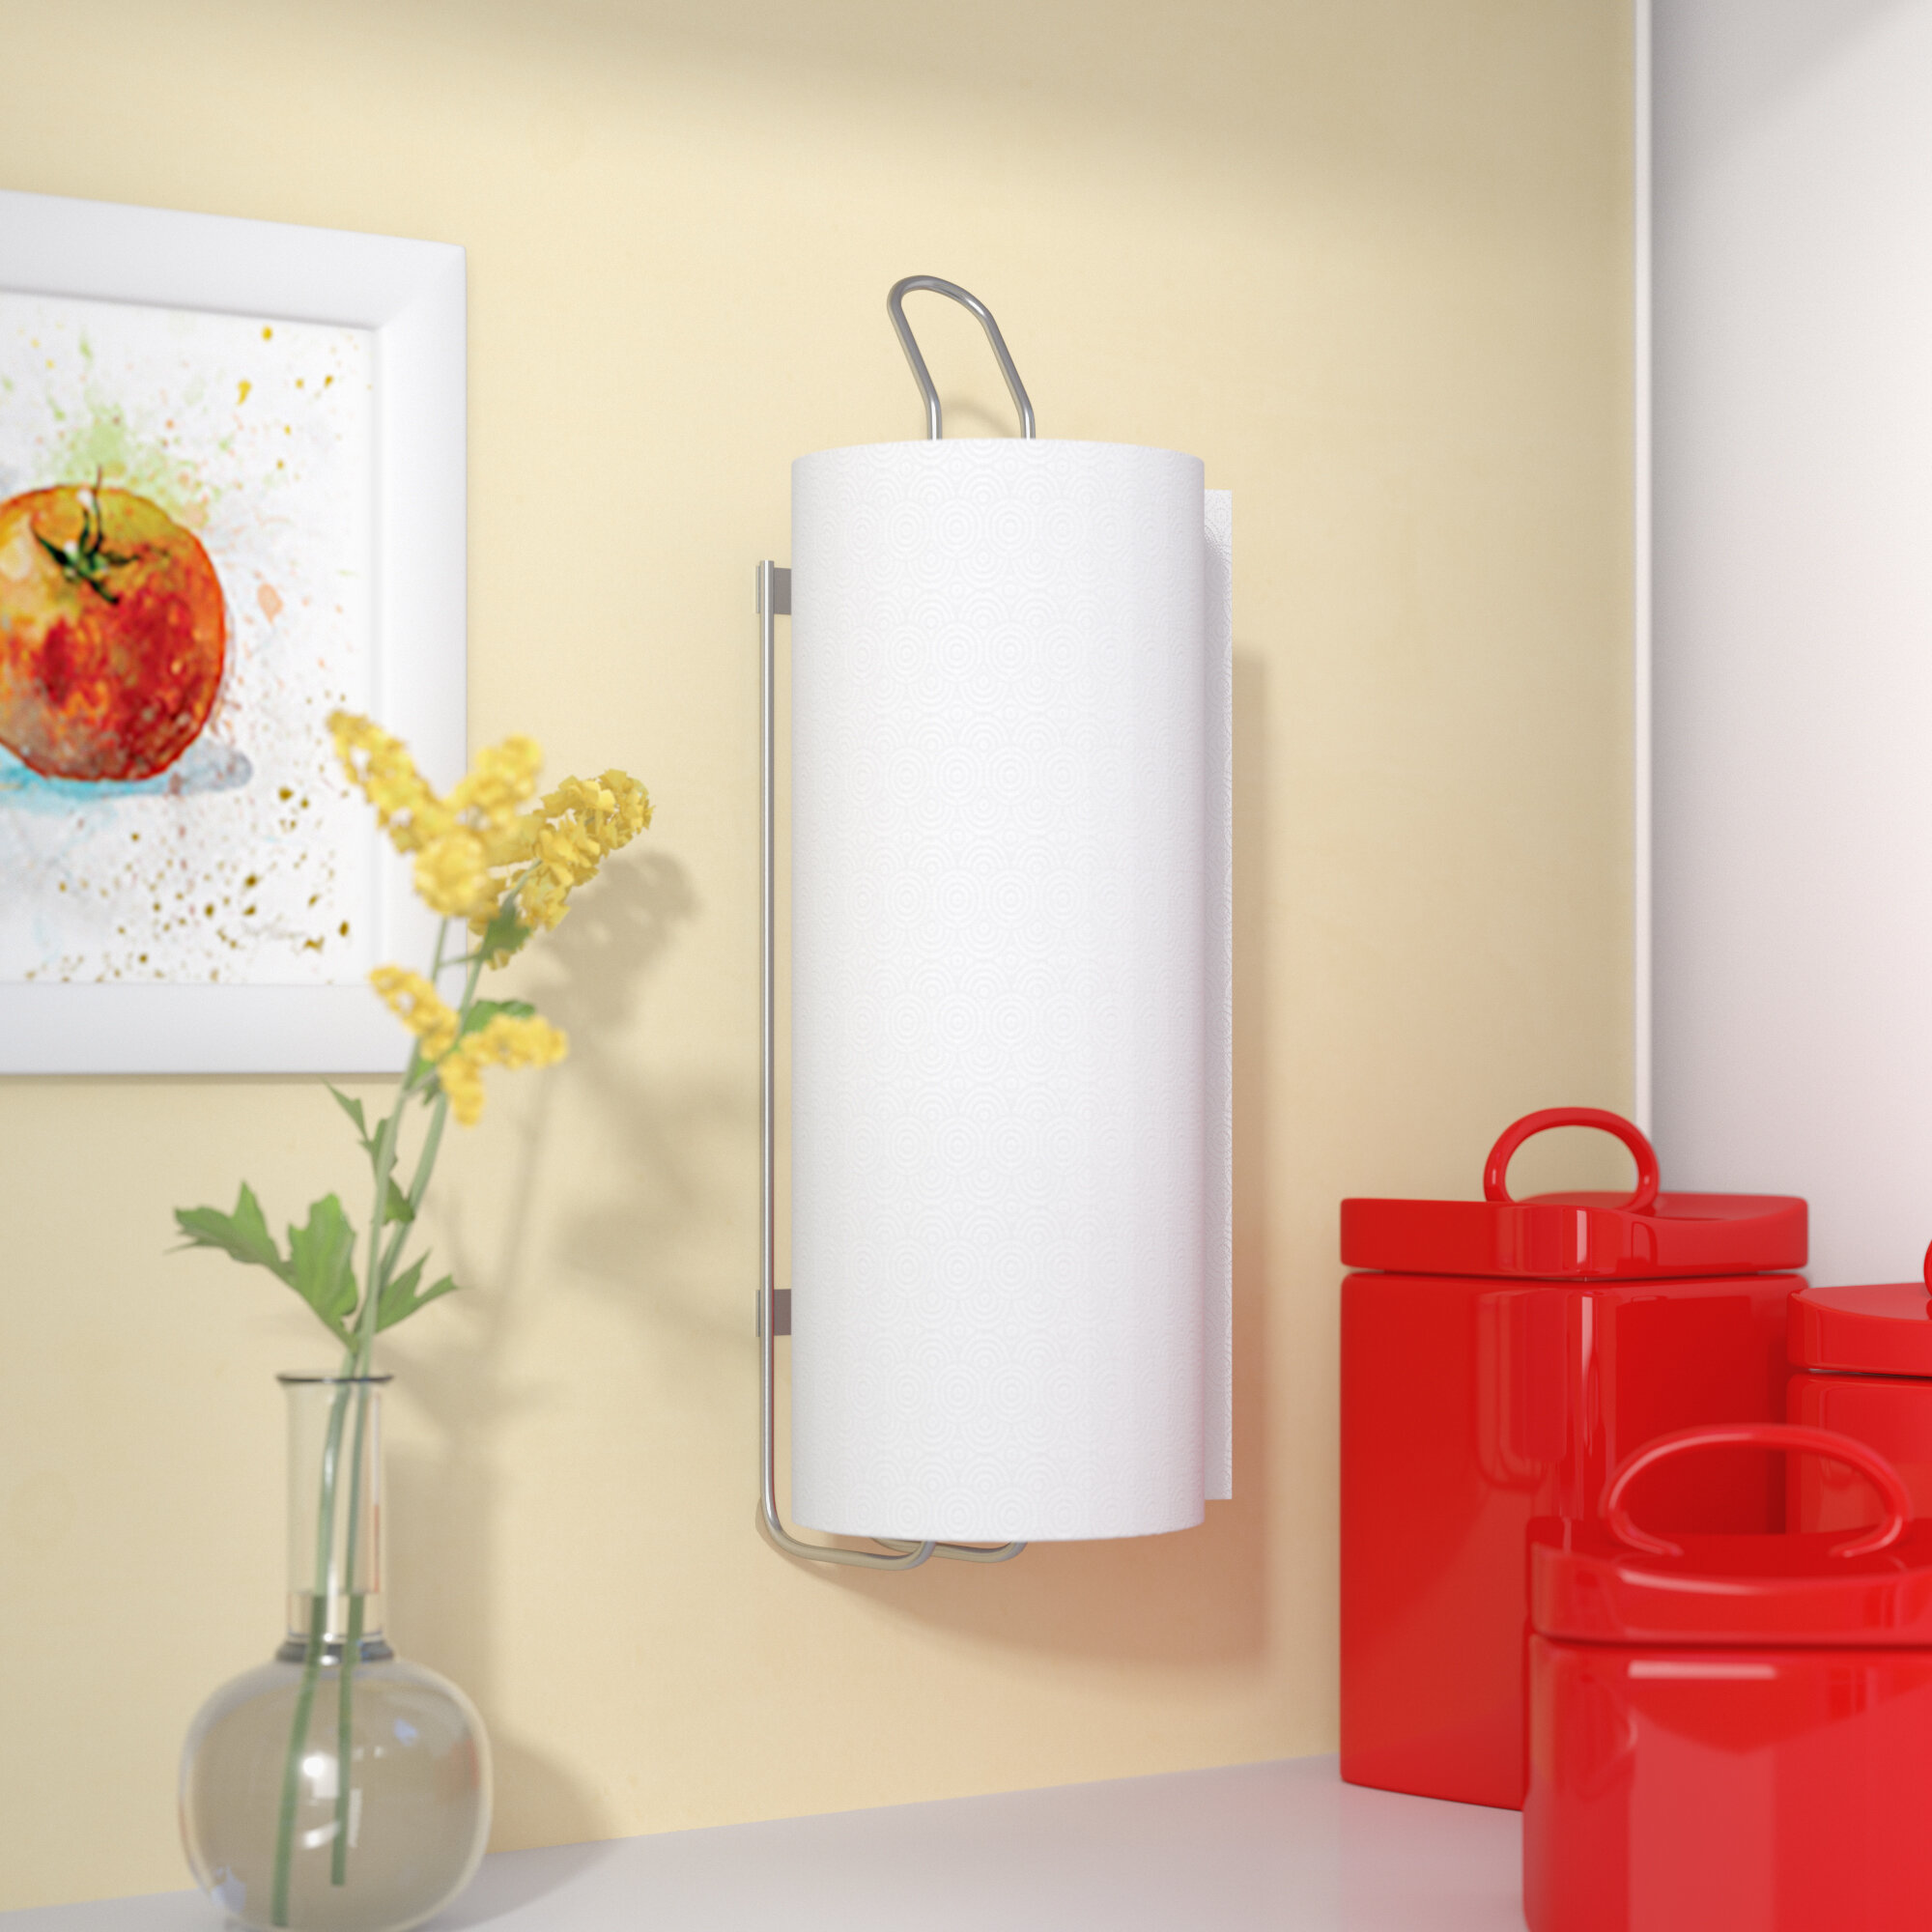 Rebrilliant Wall Mounted Paper Towel Holder Reviews Wayfair